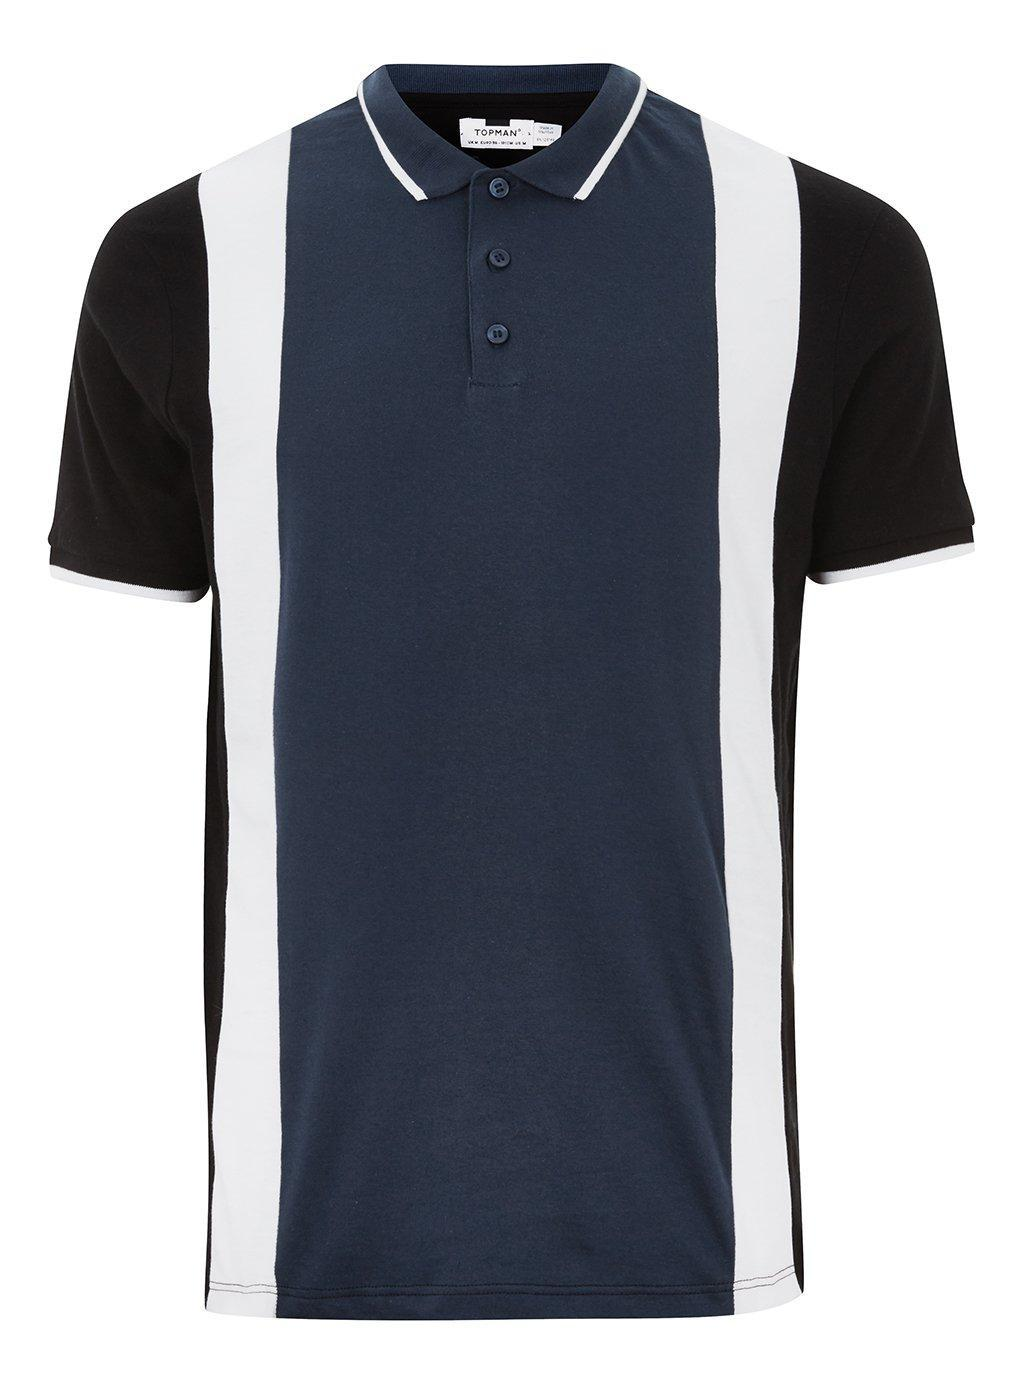 f62d6dc2 TOPMAN Navy Panel Slim Fit Polo in Blue for Men - Lyst